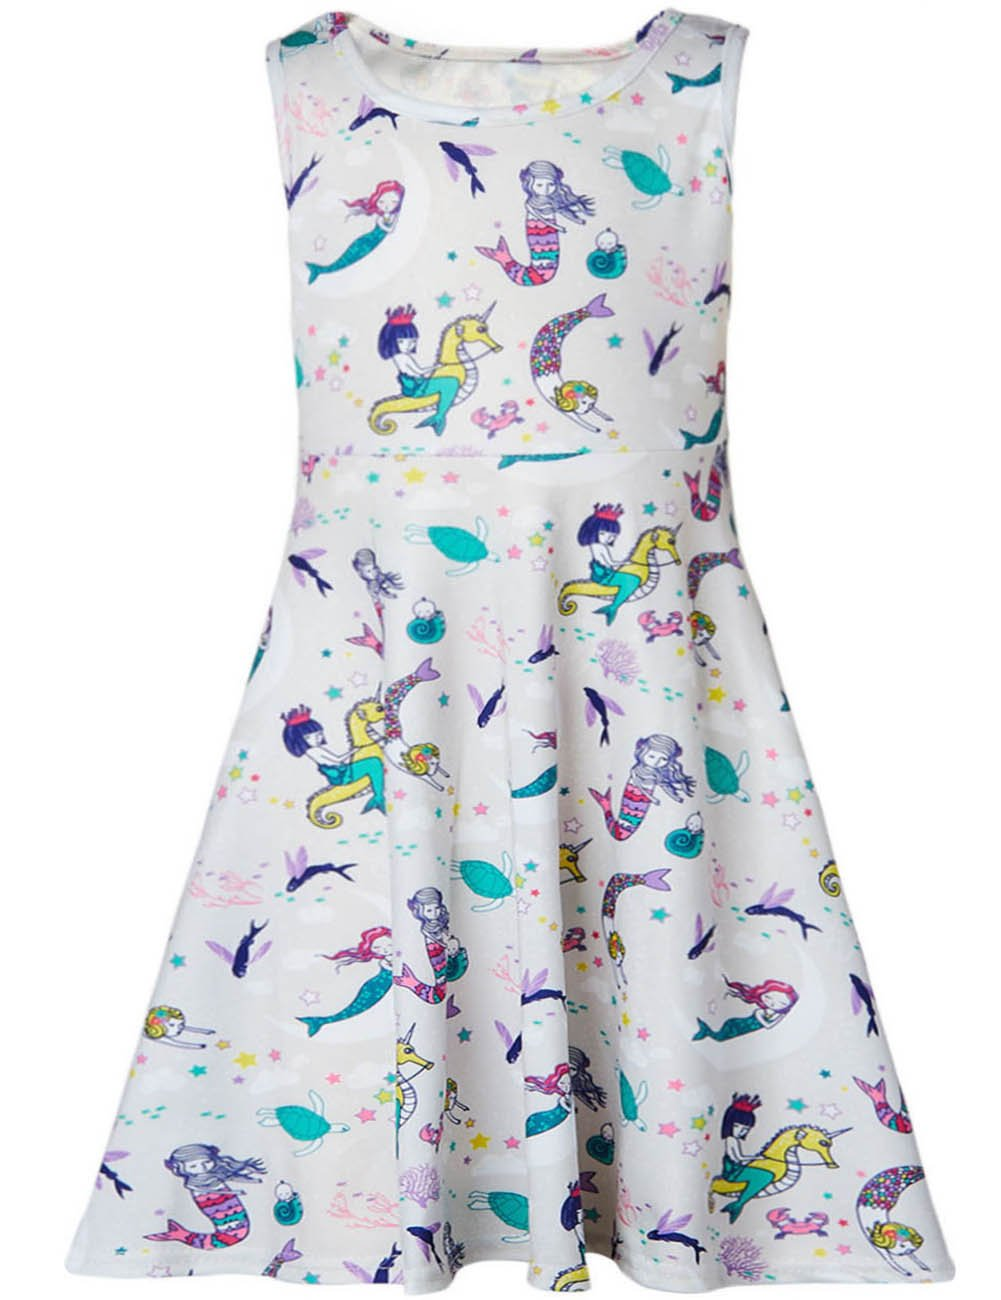 Funnycokid Girls Sleeveless Round Neck Floral Printed Holiday Dress Size 4-13 ZY-TZ4P